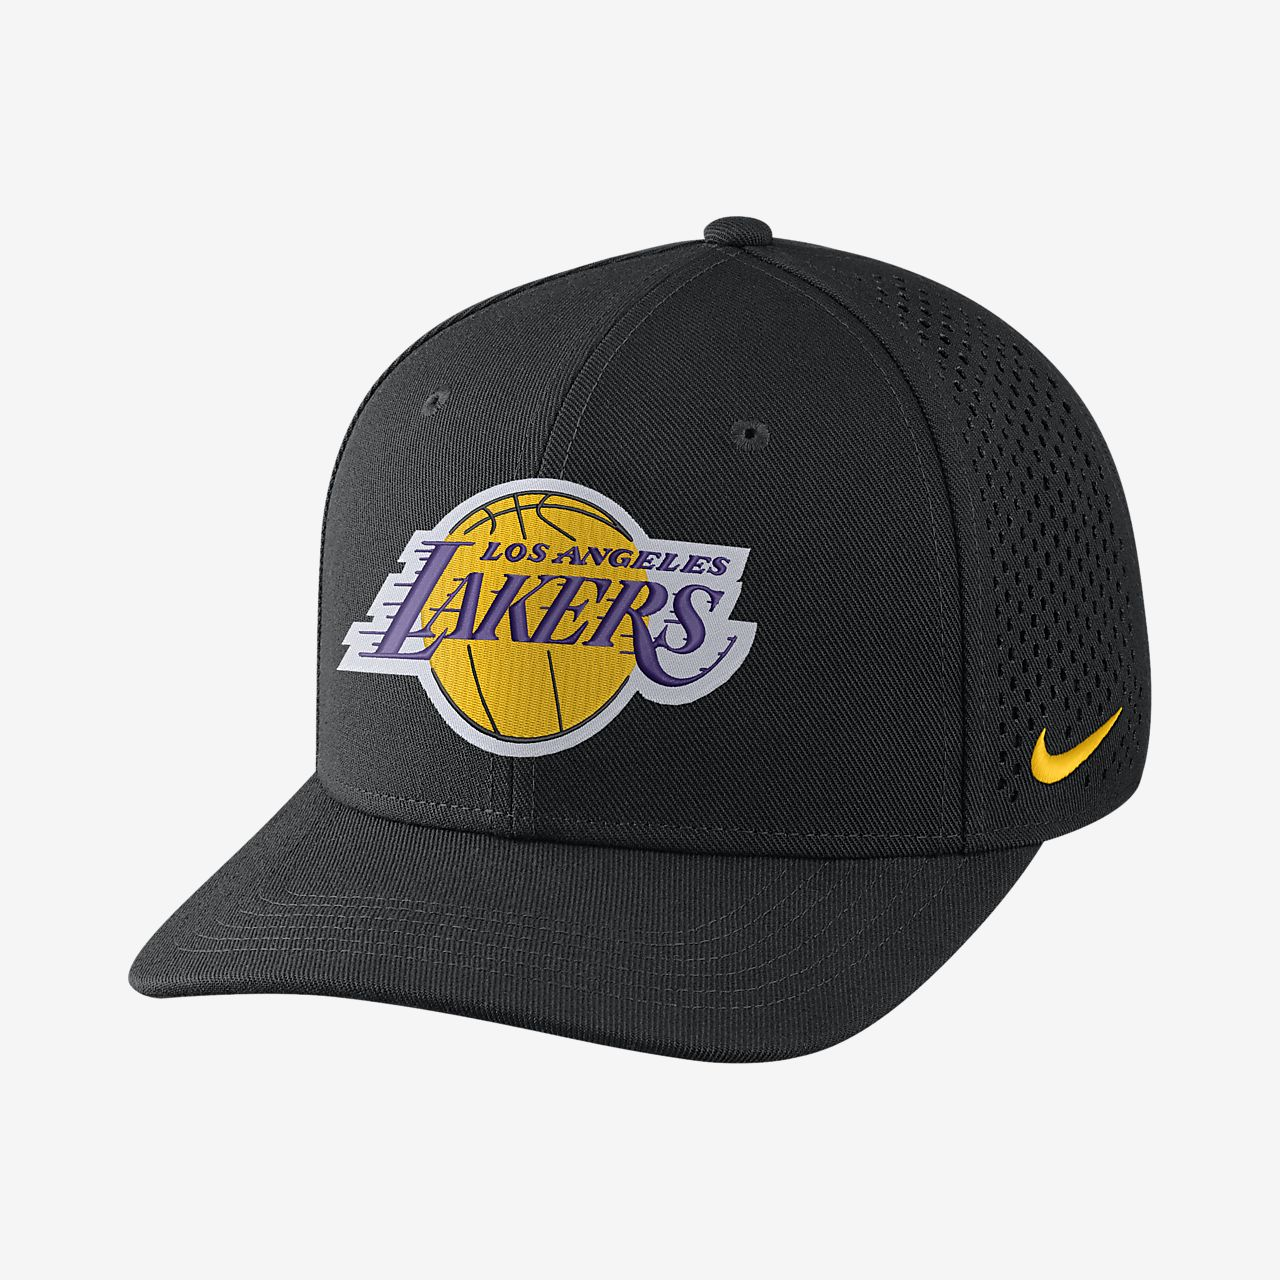 3b03a53527 Los Angeles Lakers Nike AeroBill Classic99 Unisex Adjustable NBA Hat ...